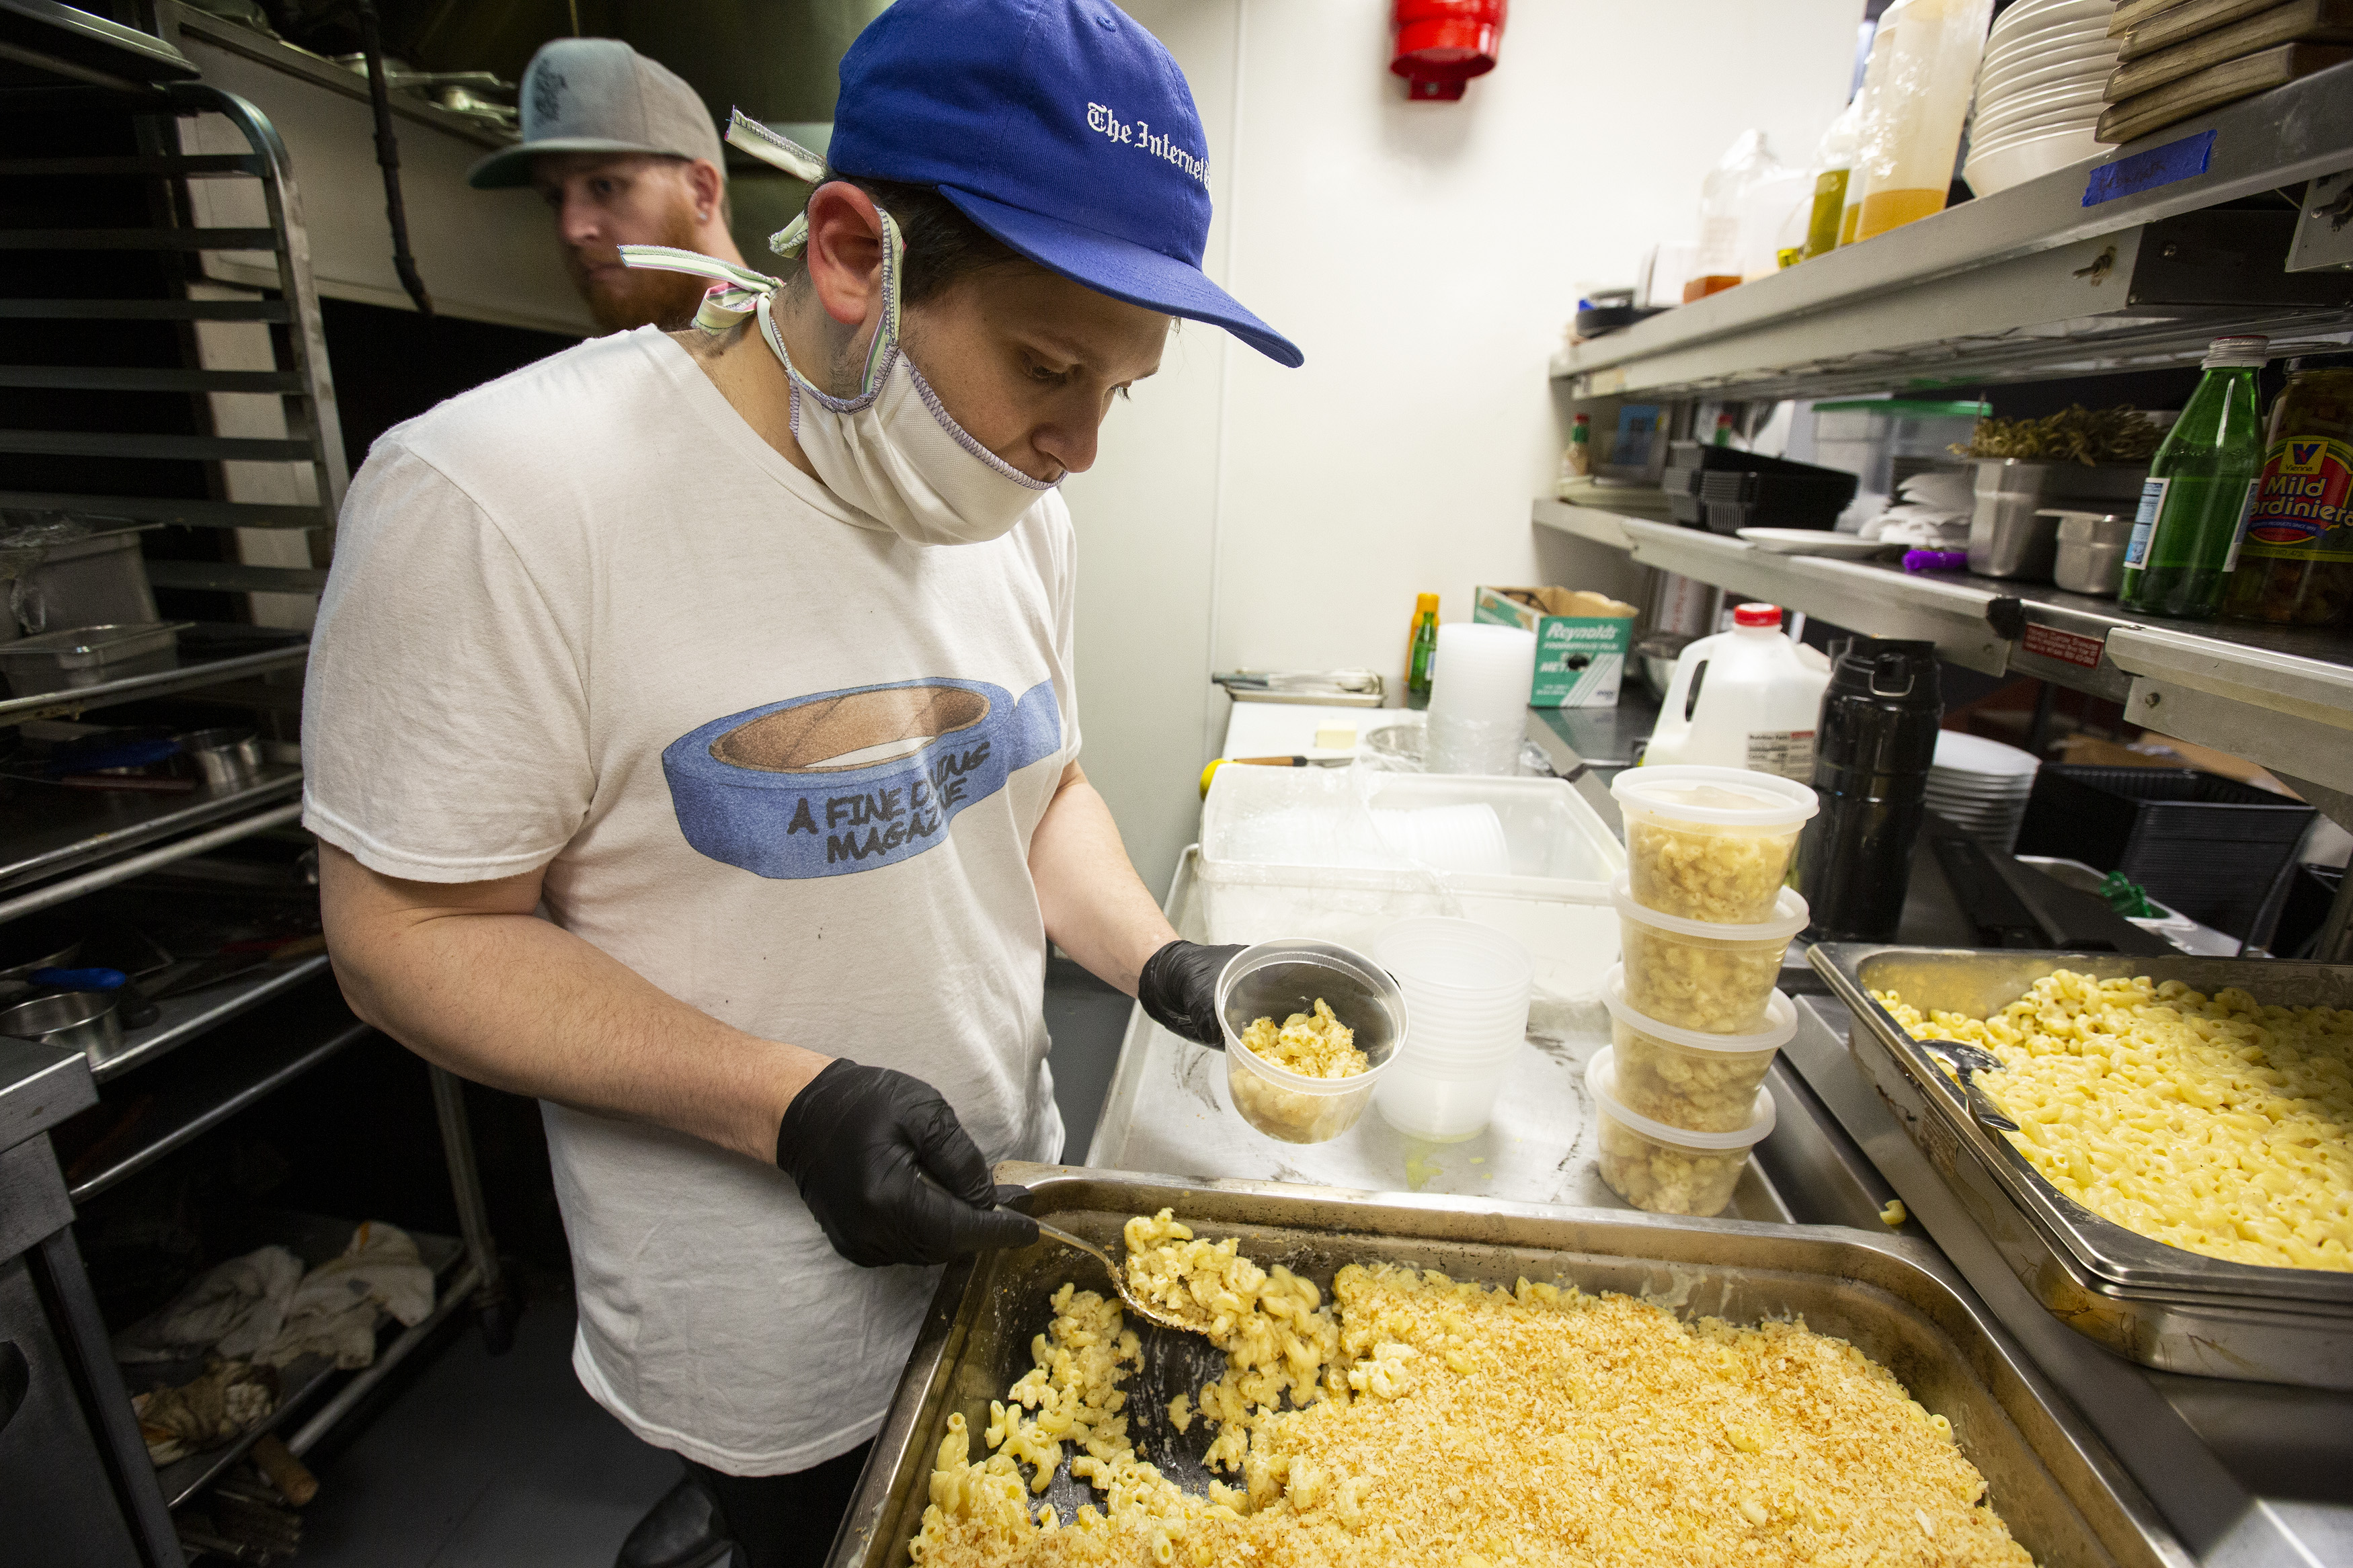 A man wearing a medical mask scoops mac and cheese into plastic containers.